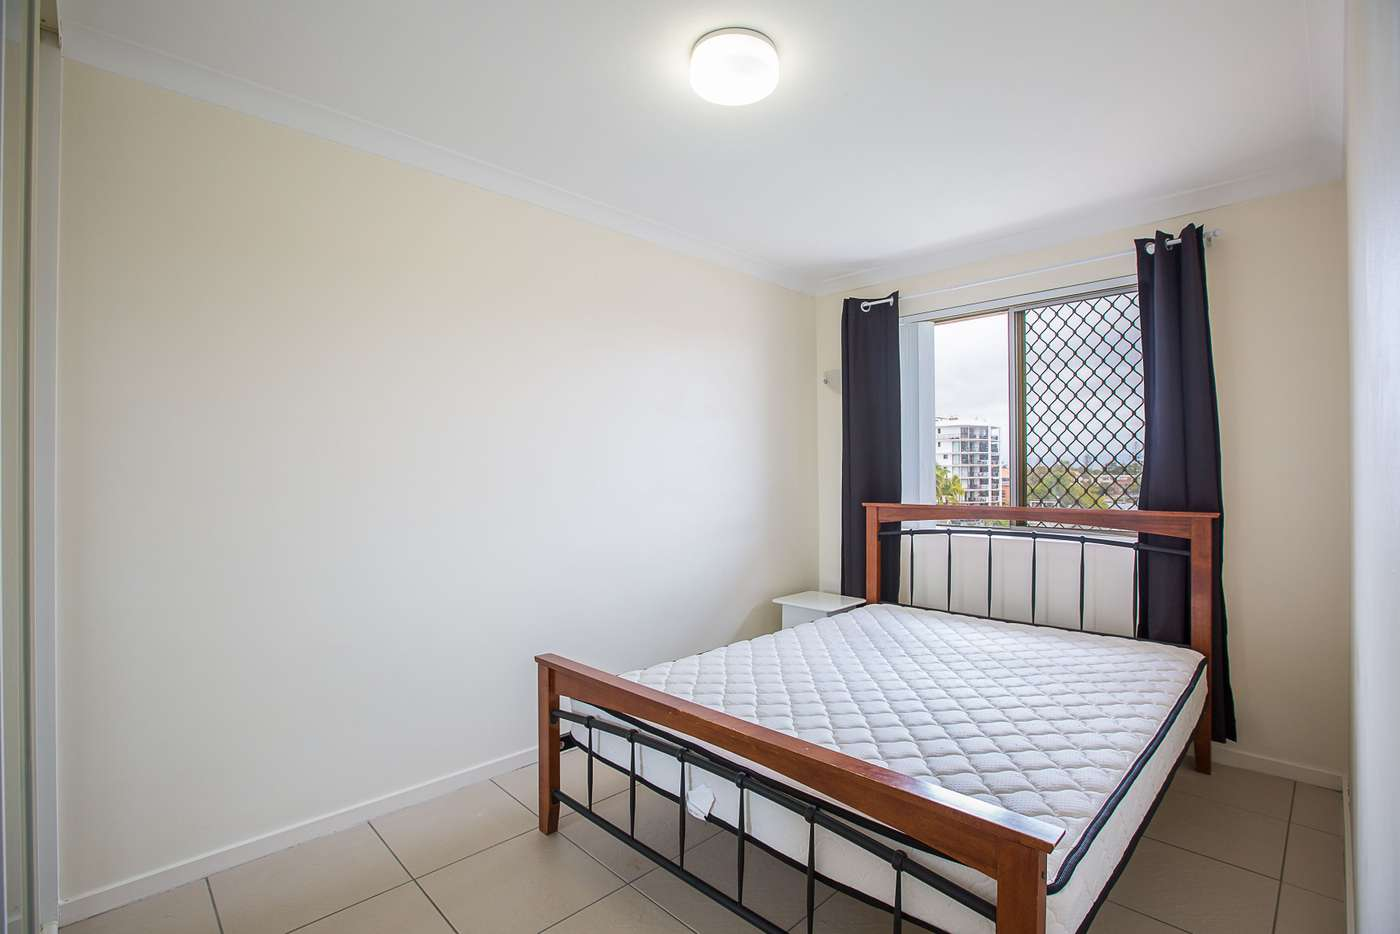 Sixth view of Homely unit listing, 14/59A Peninsular Drive, Surfers Paradise QLD 4217